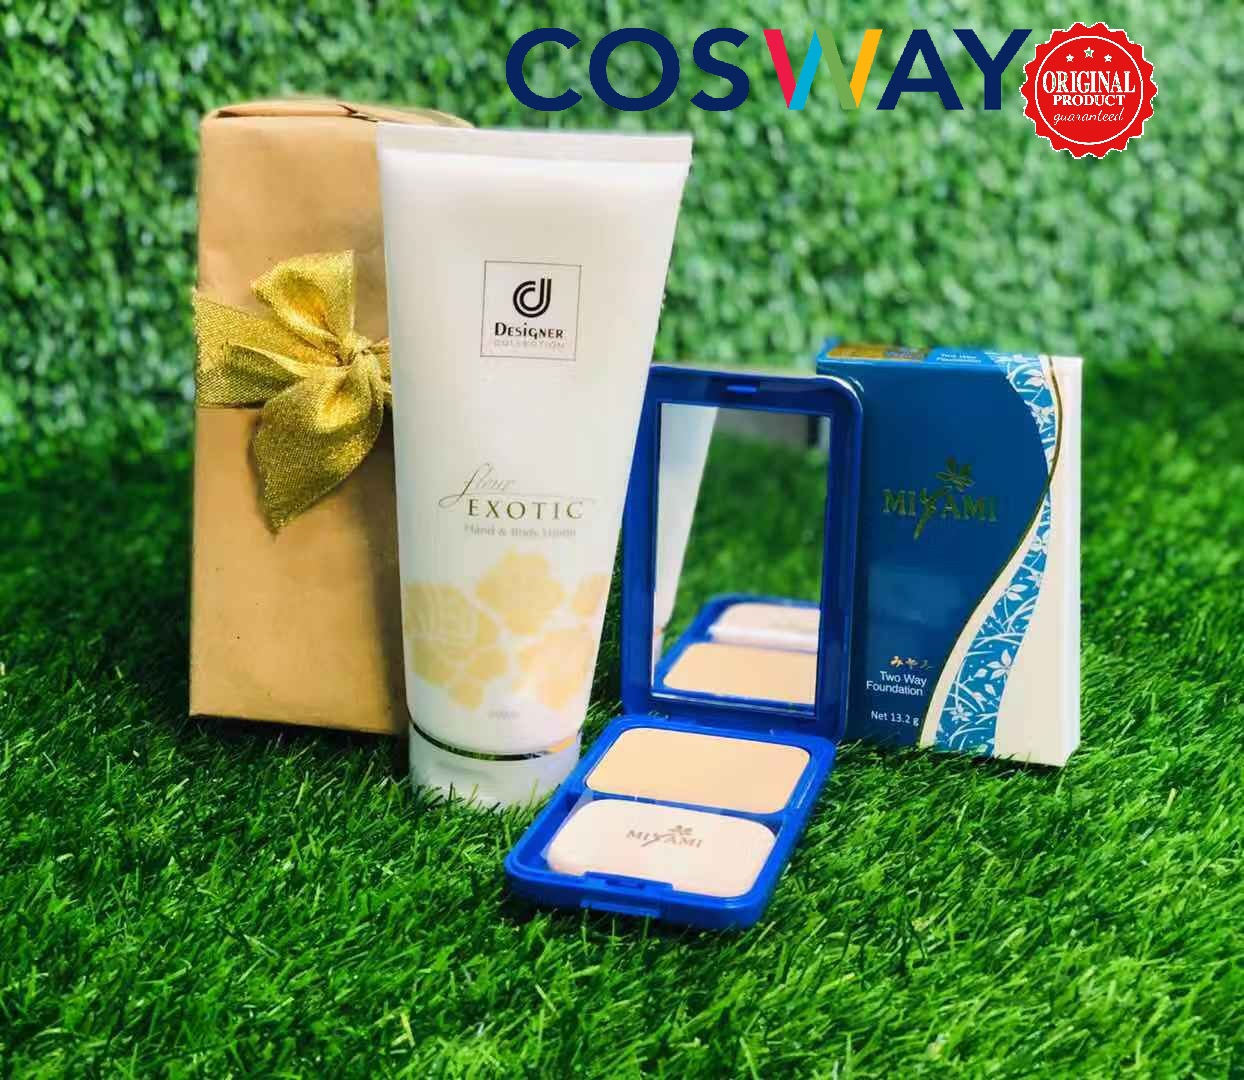 GS012- Cosway Designer Collection Body Lotion & Miyami Foundation - Gift Set 2in1 (Original Cosway)